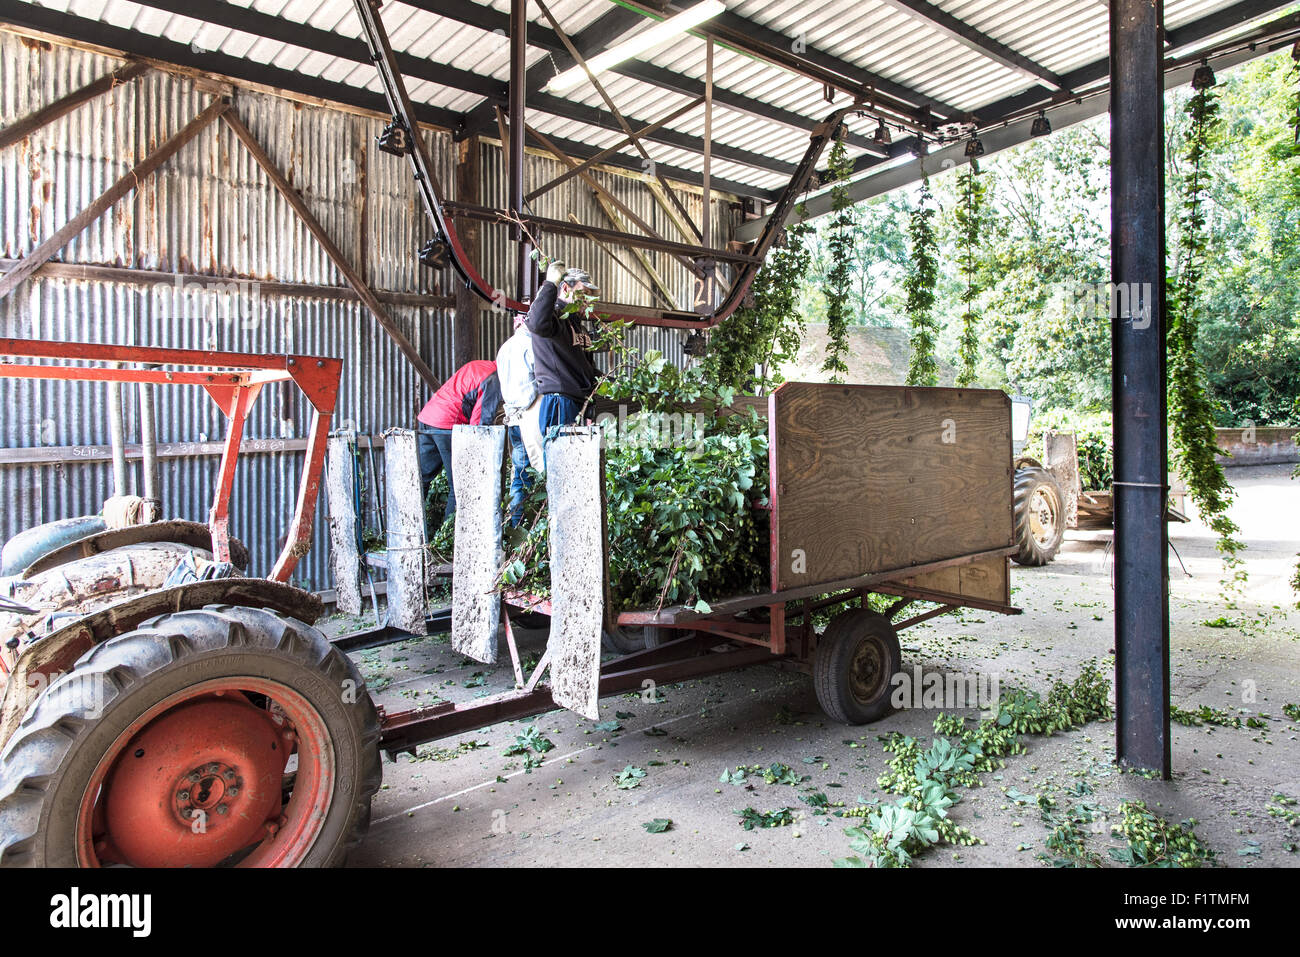 Boughton, near Faversham, Kent 7 September 2015. Hop Harvest. Workers clip the hop bines for transport to the machine - Stock Image